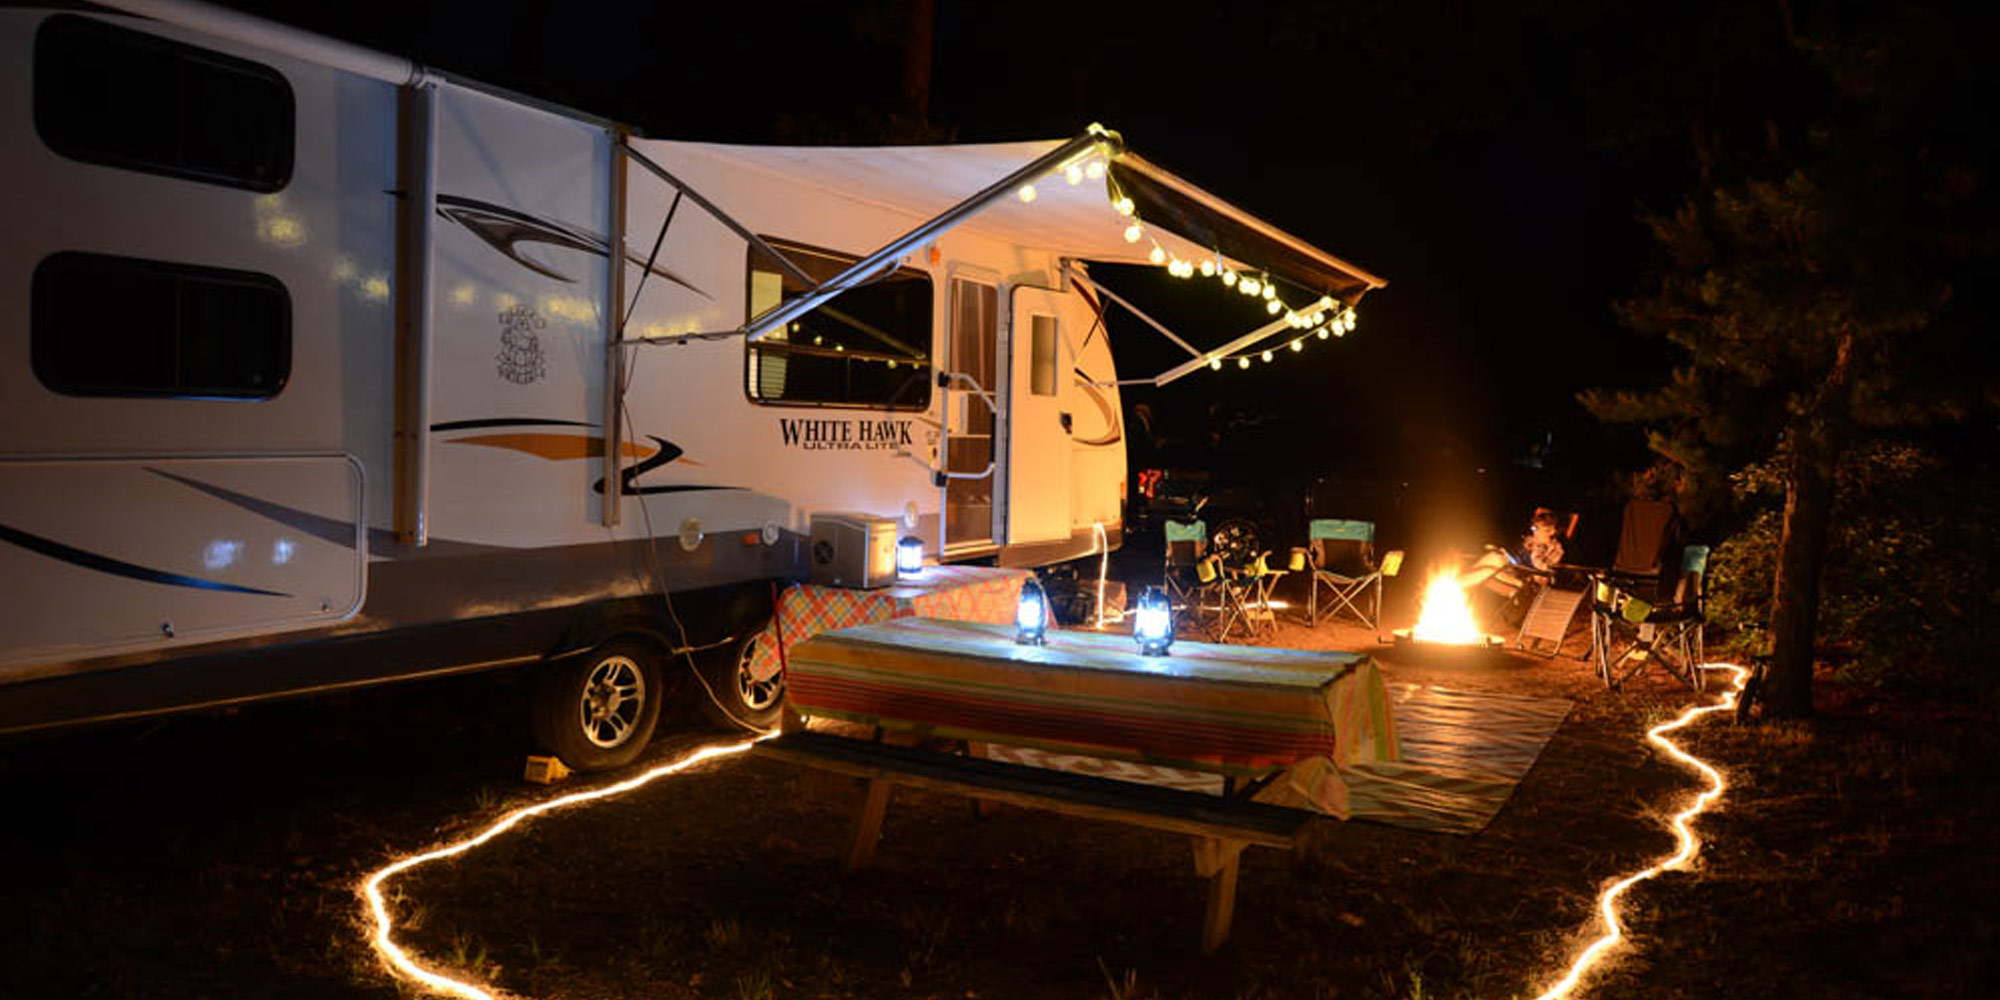 RV campground at night with lights